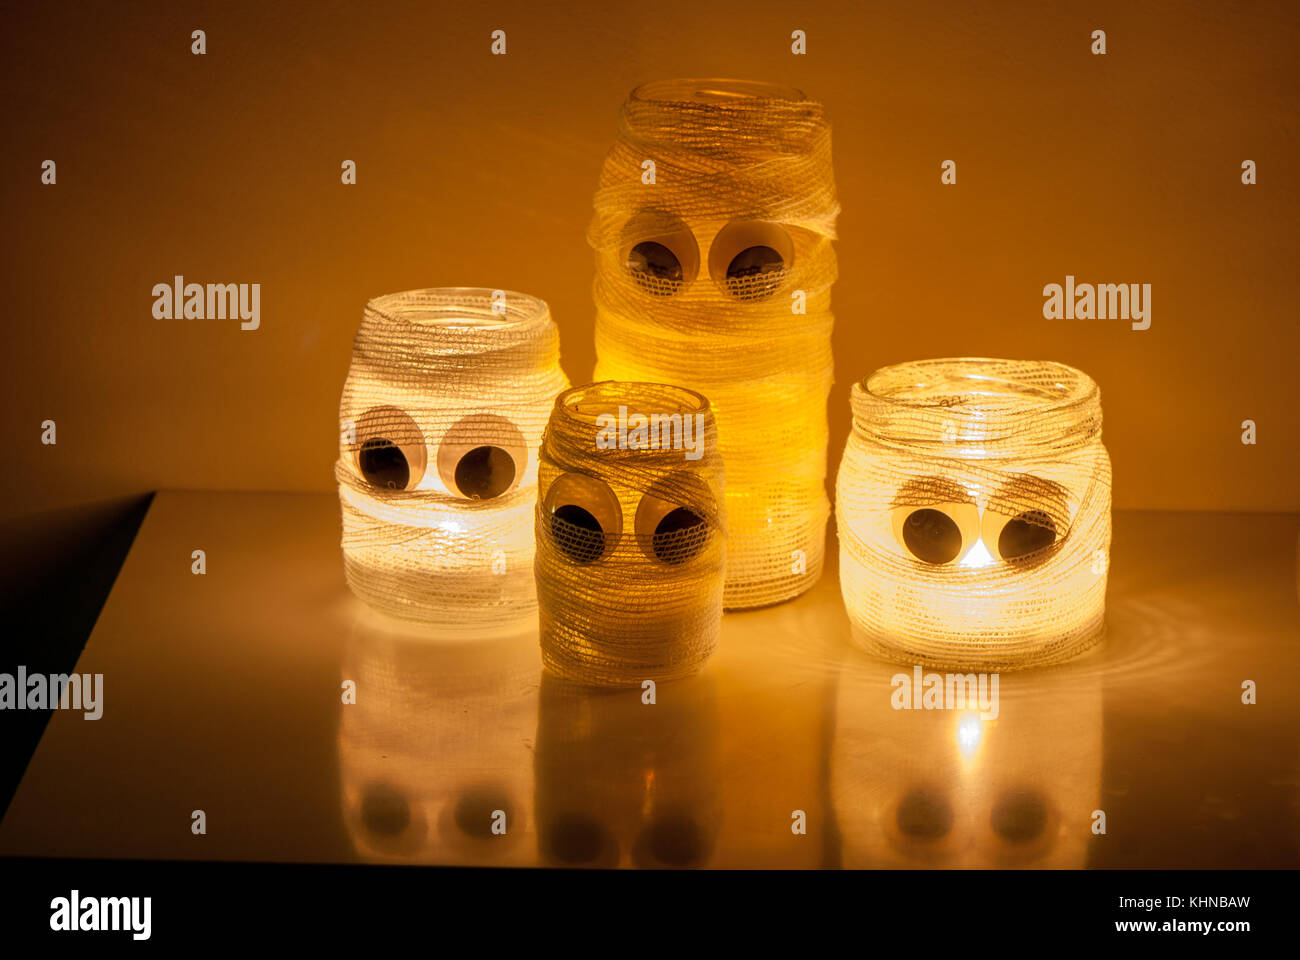 dolls made with glass jars and a candle inside decorated with stock